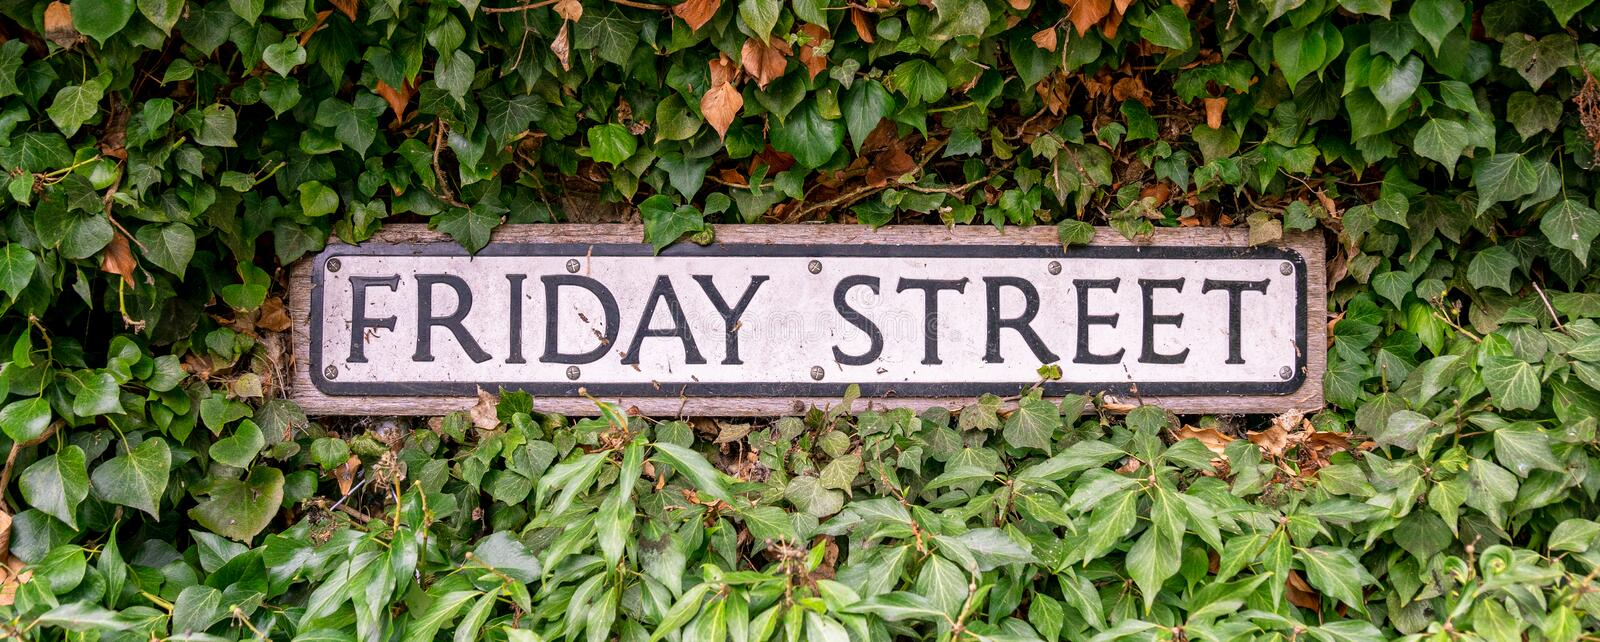 Traditional Friday Street road sign, England, United Kingdom. Friday Street road sign surrounded by leaves, England, United Kingdom stock images